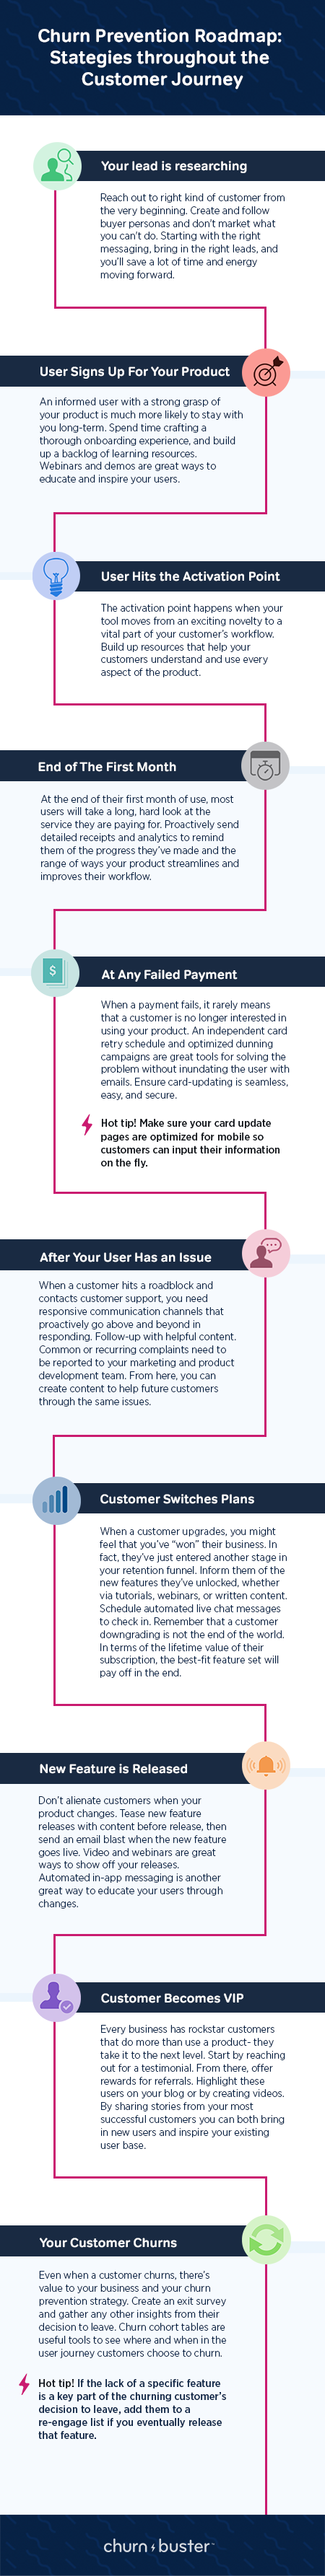 """This is an infographic showing a churn prevention roadmap. It starts with the step """"your lead is researching"""" and ends with """"your customer churns"""" with many stages of the cusotmer journey in betwee. This infographic is from the SaaS company Churn Buster"""